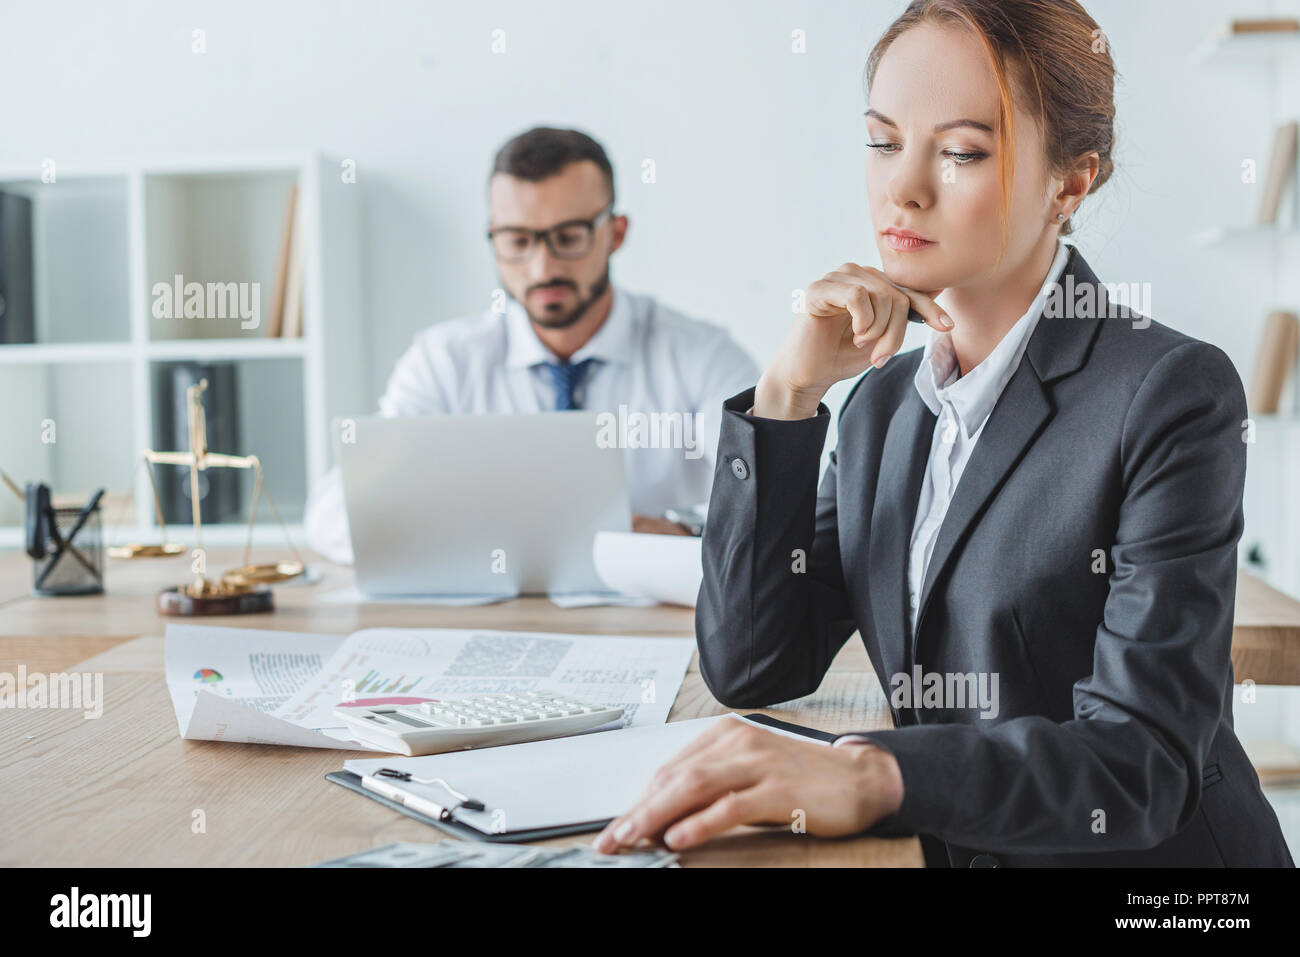 accountants working in office with documents and laptop - Stock Image